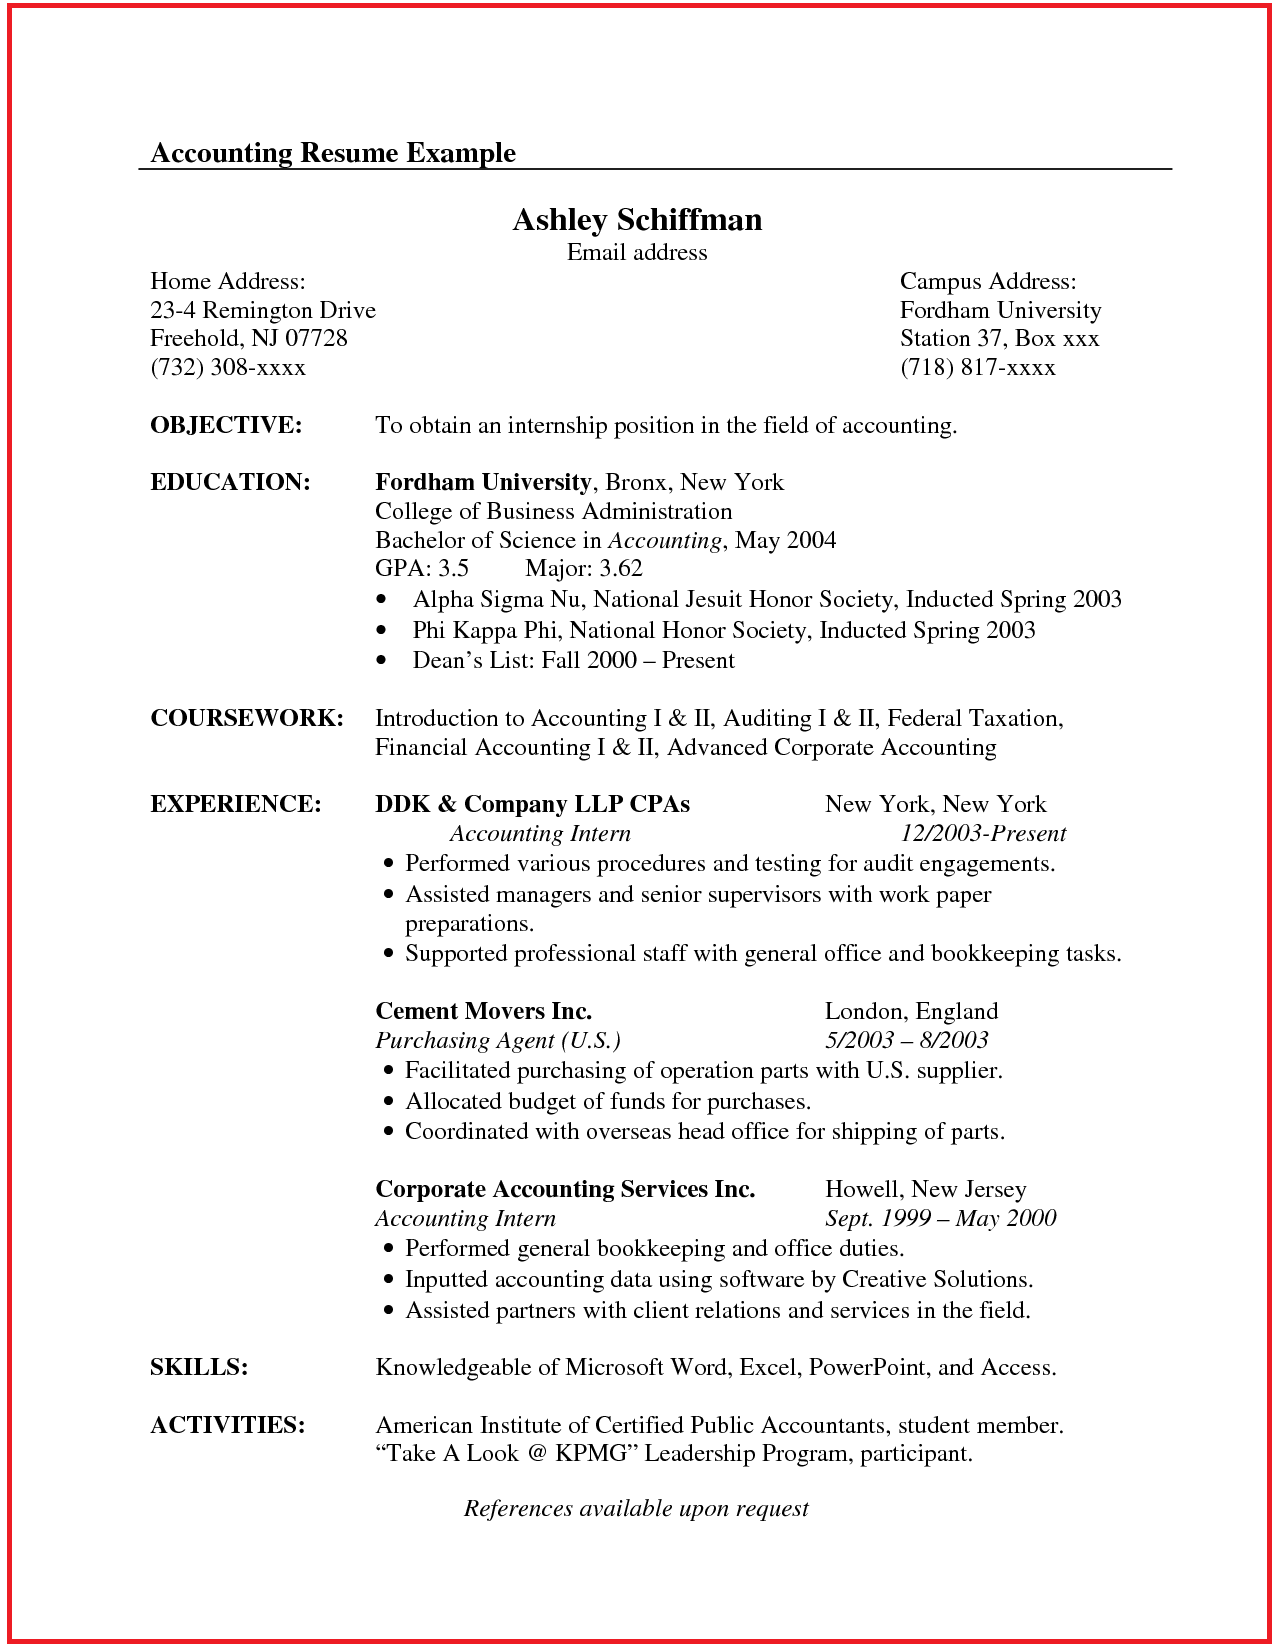 accountant resume sample canada httpwwwjobresumewebsiteaccountant - Canadian Sample Resume